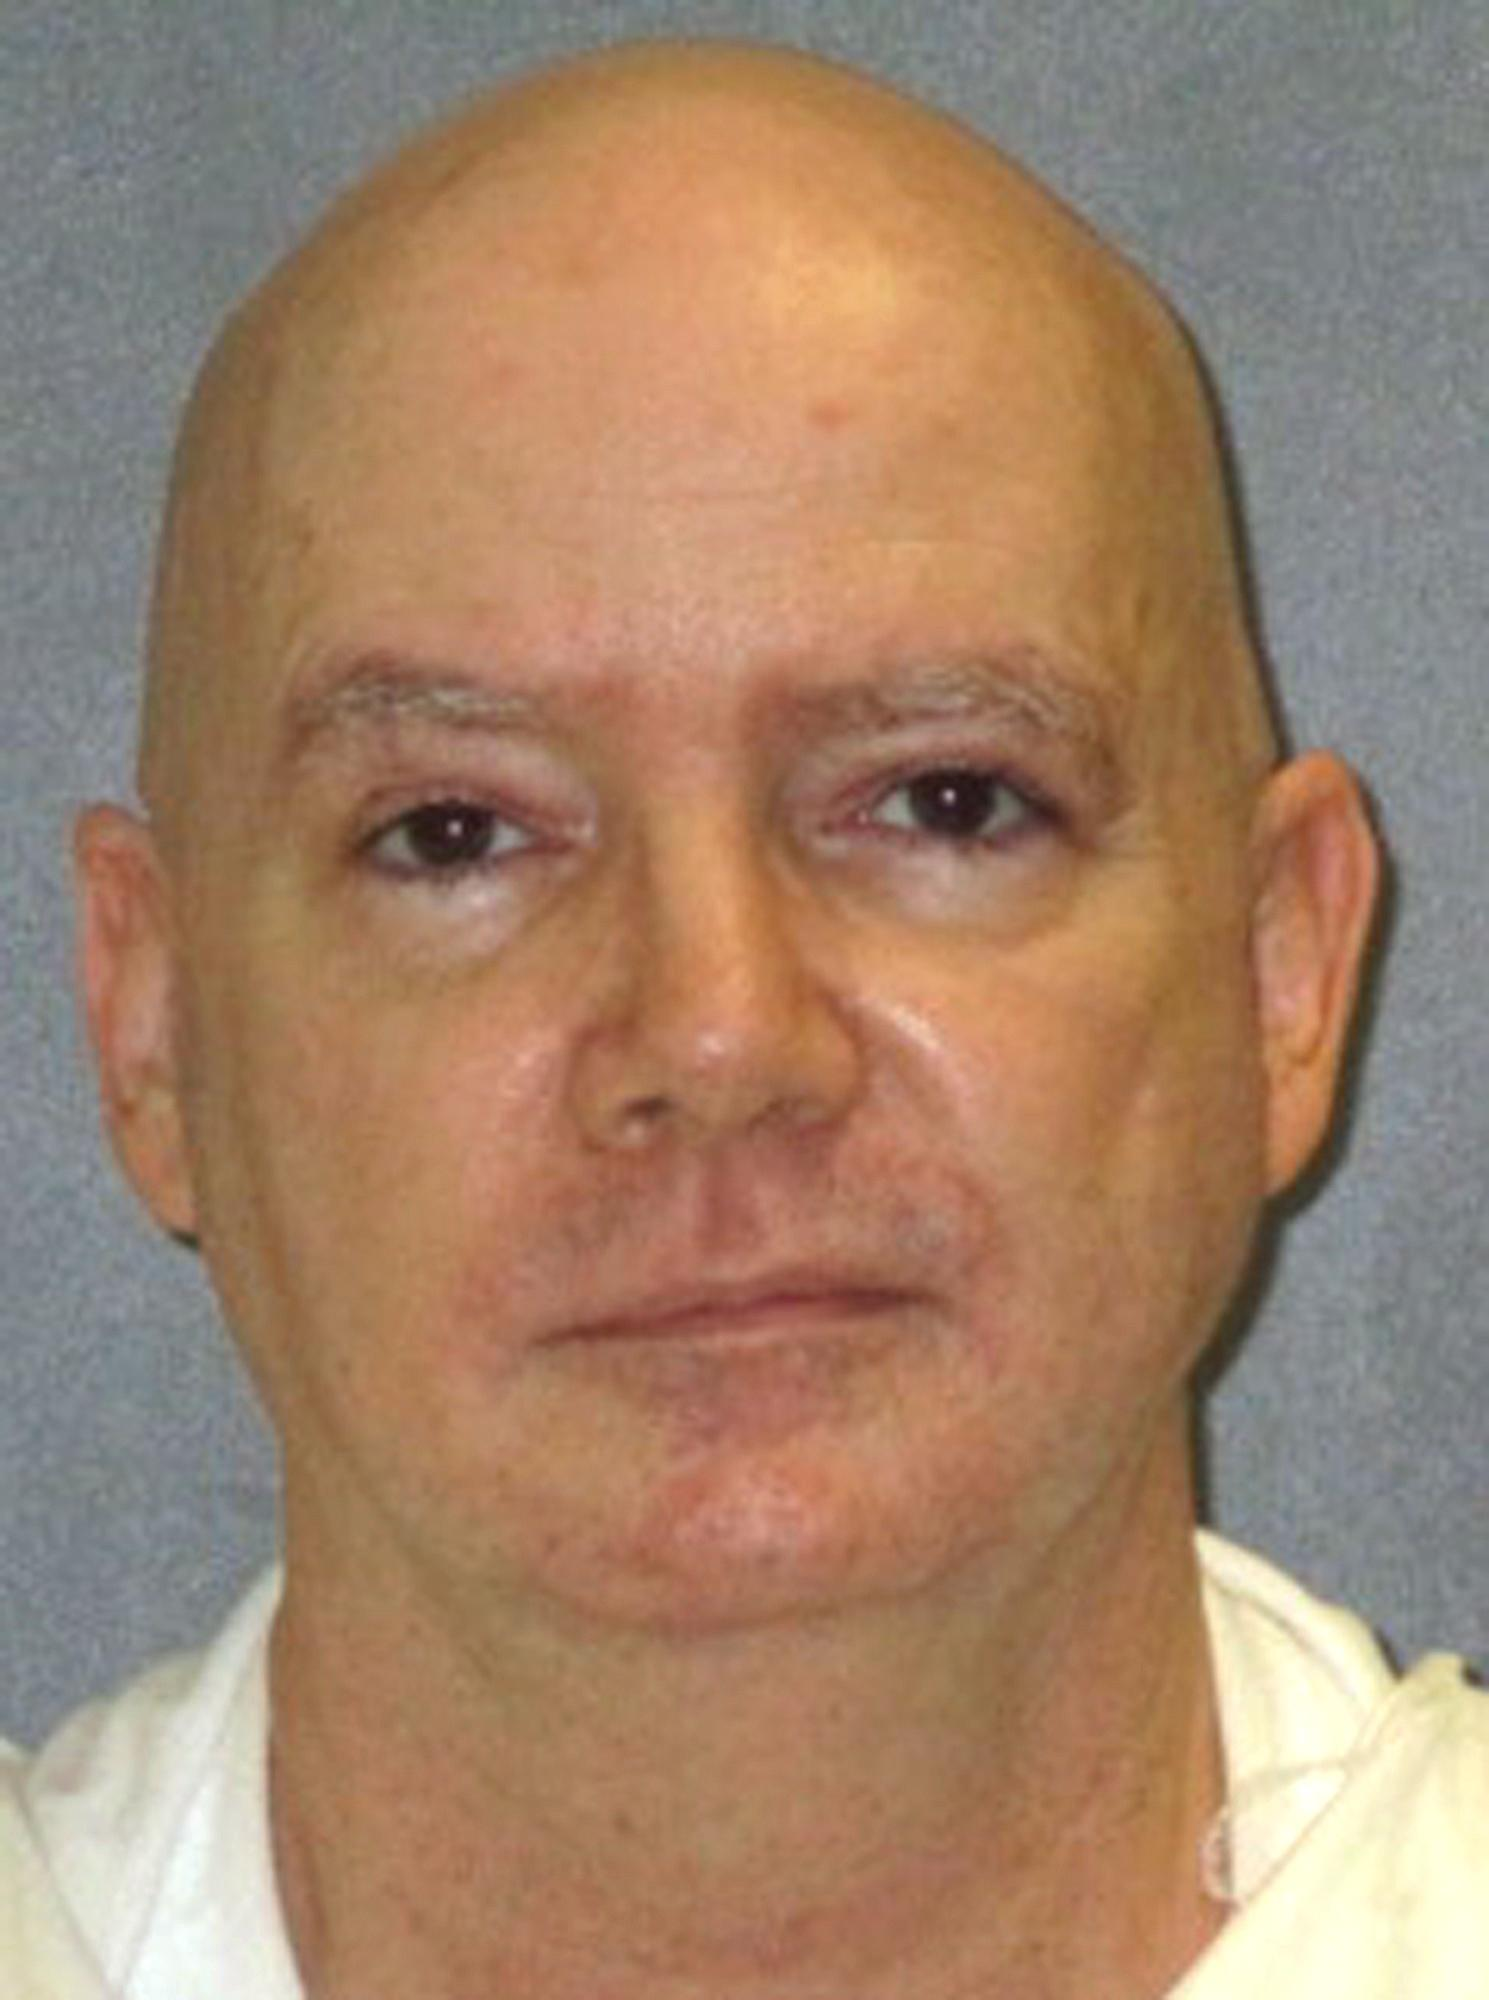 Tourniquet Killer' executed in Texas for 1992 strangling | The